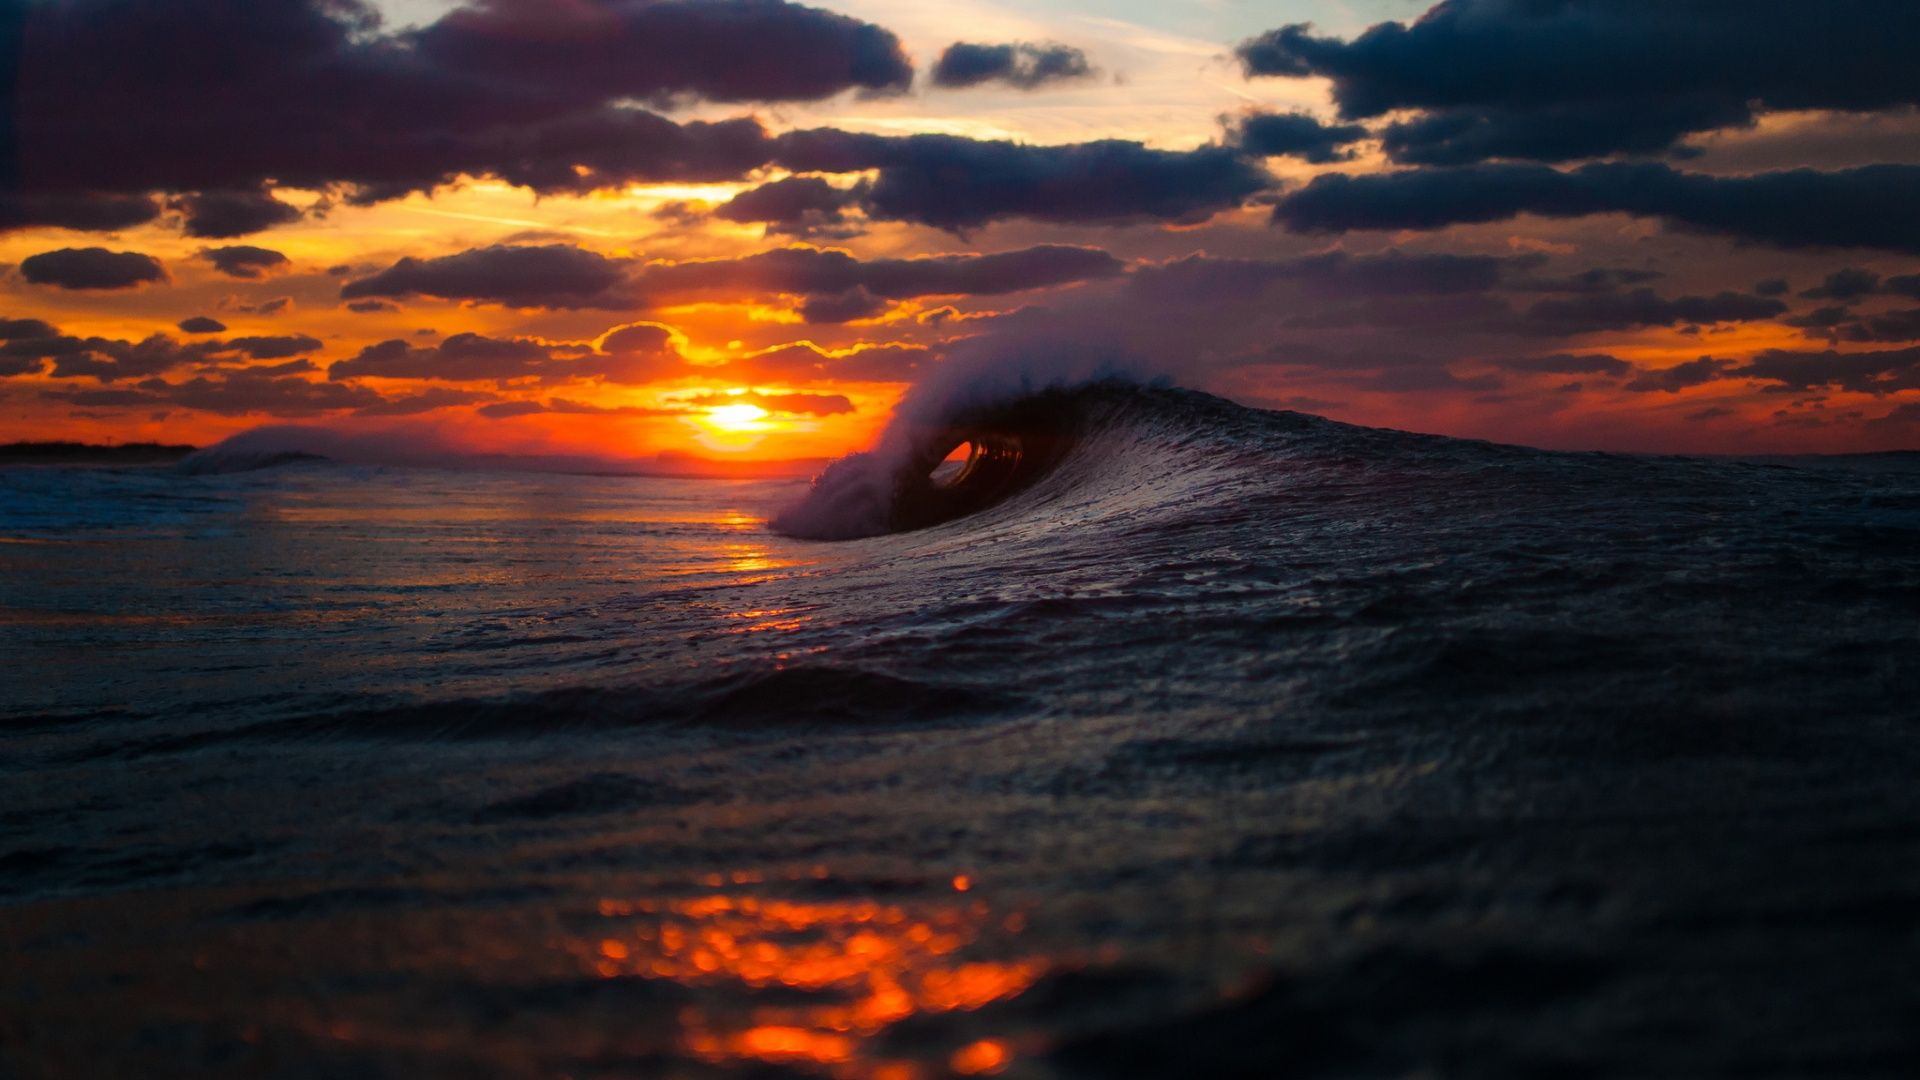 Sunset With Sea Wave Tap To See More Breathtaking Beach: Ocean Waves Sunset